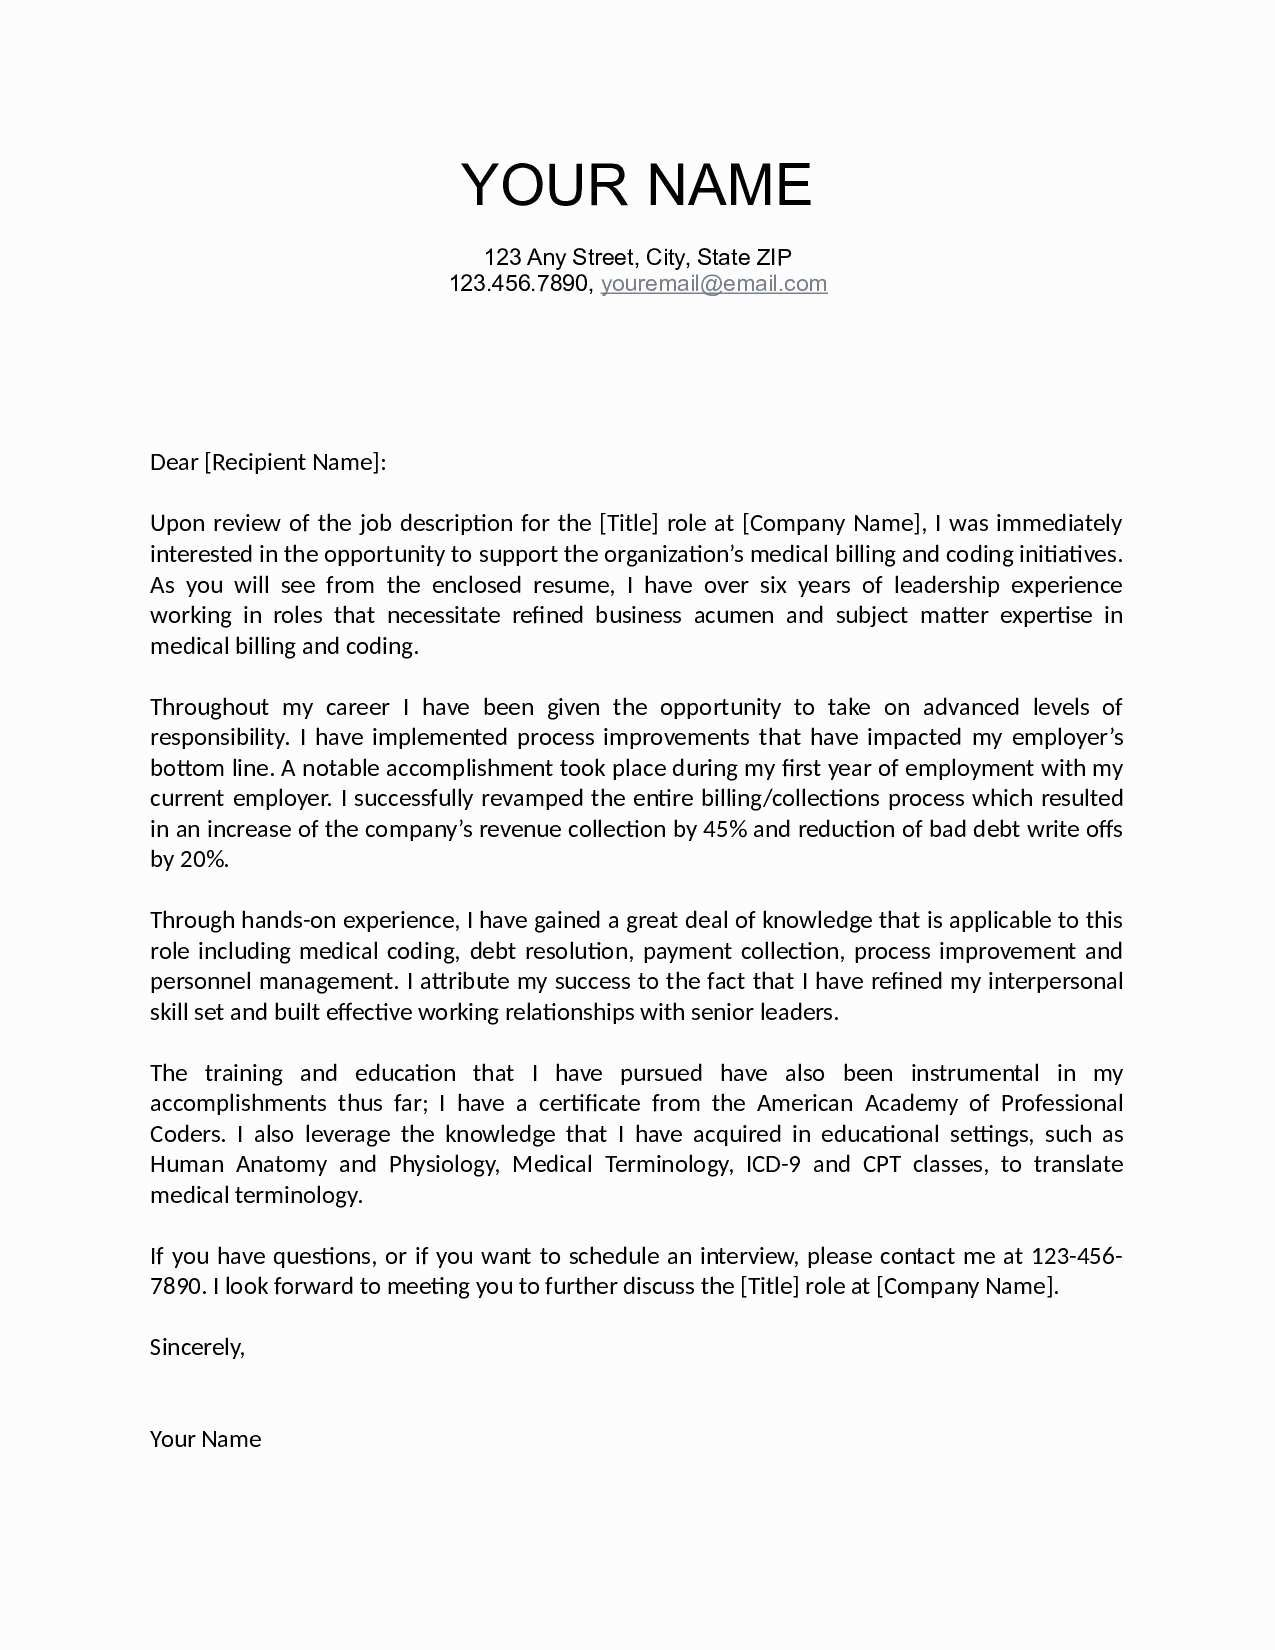 Corporate resolution letter template collection letter templates corporate resolution letter template letter resolution template accmission Gallery